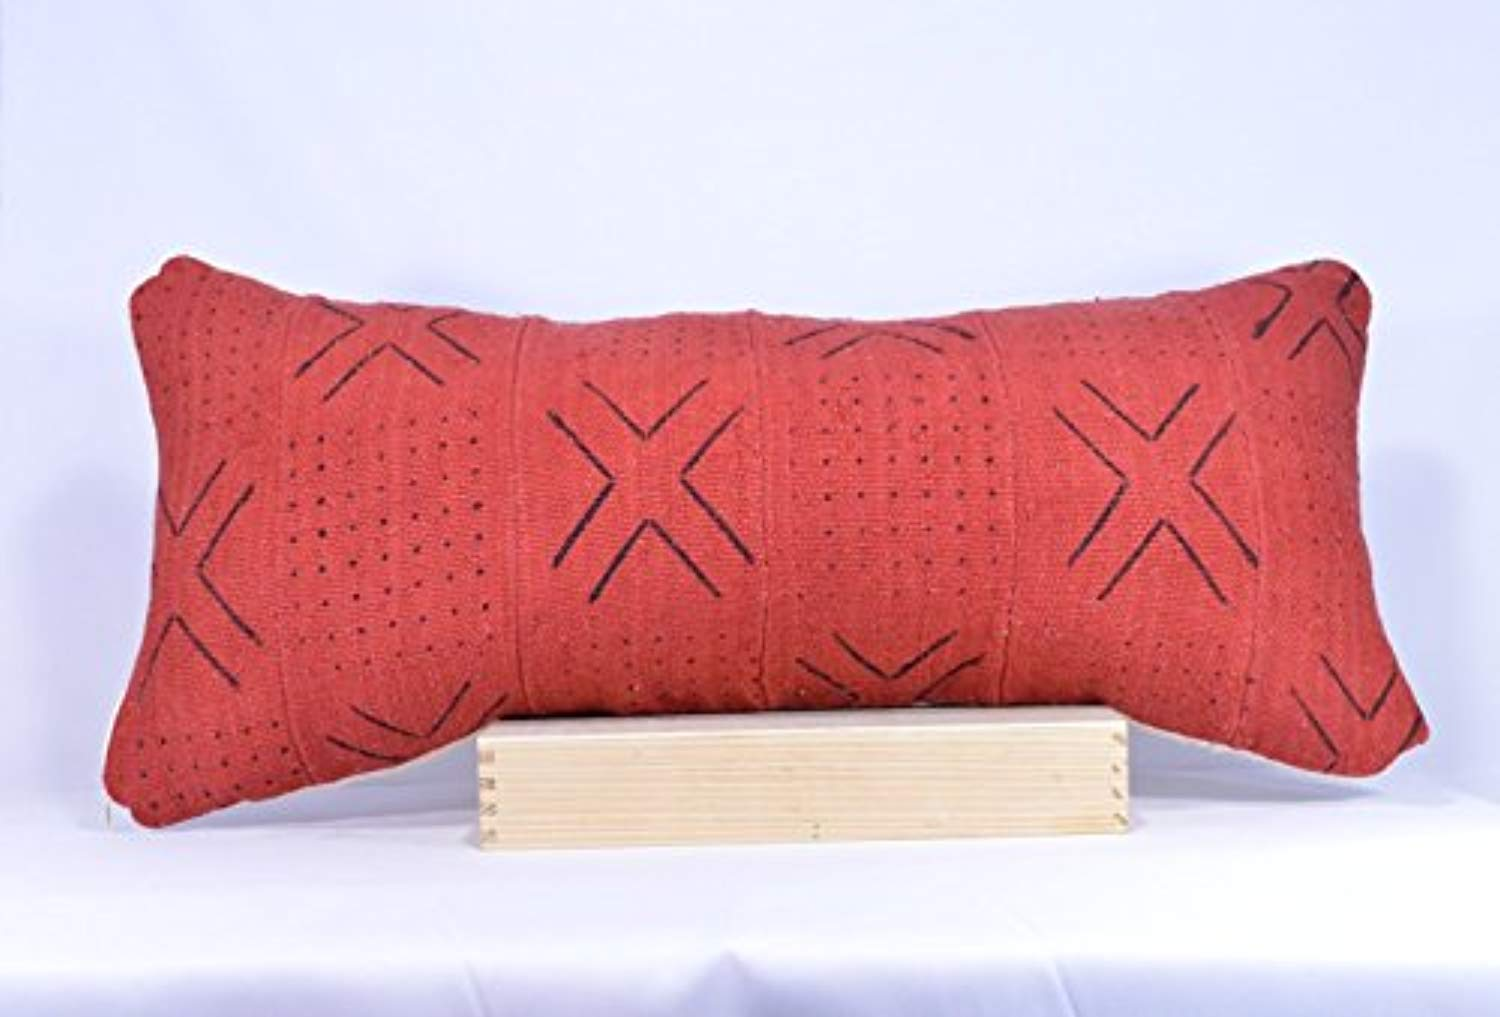 12x26 Lumbar - Red African Mud cloth Pillow Cover; Bogolanfini Decorative Pillow, Black & White Mudcloth Throw Pillow from Mali -BF1002a